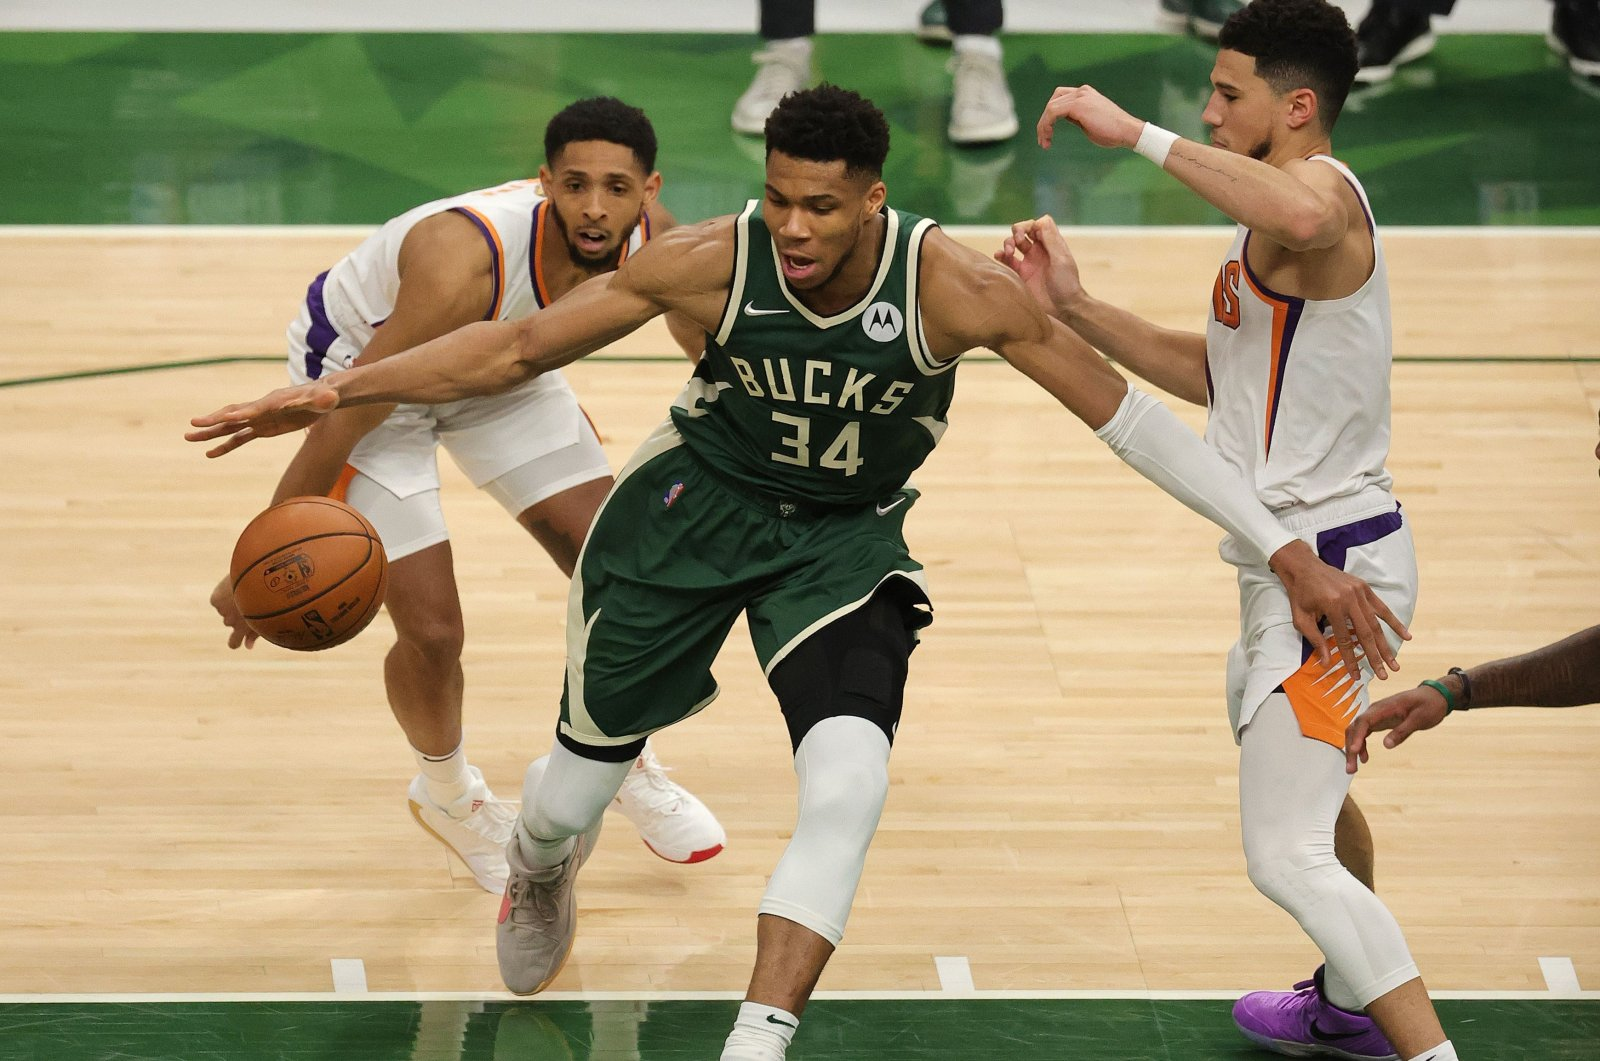 Milwaukee Bucks' Giannis Antetokounmpo (C) drives into the lane as Phoenix Suns' Devin Booker (R) defends during the NBA Finals Game 3 at Fiserv Forum, Milwaukee, Wisconsin, U.S., July 11, 2021. (AFP Photo)